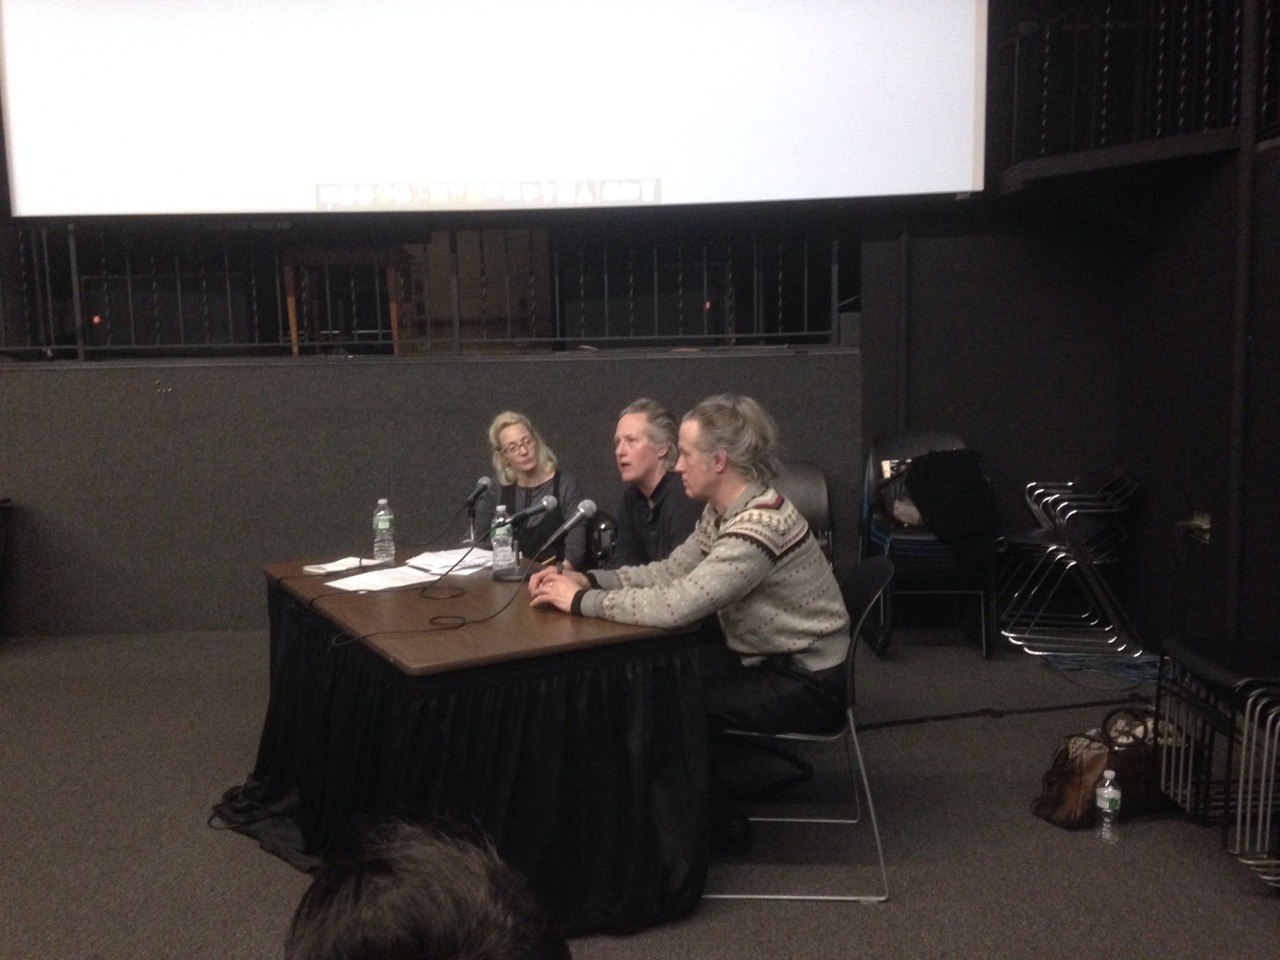 The Quay Brothers in conversation with Thyrza Goodeve (AP Faculty) at SVA Amphitheater